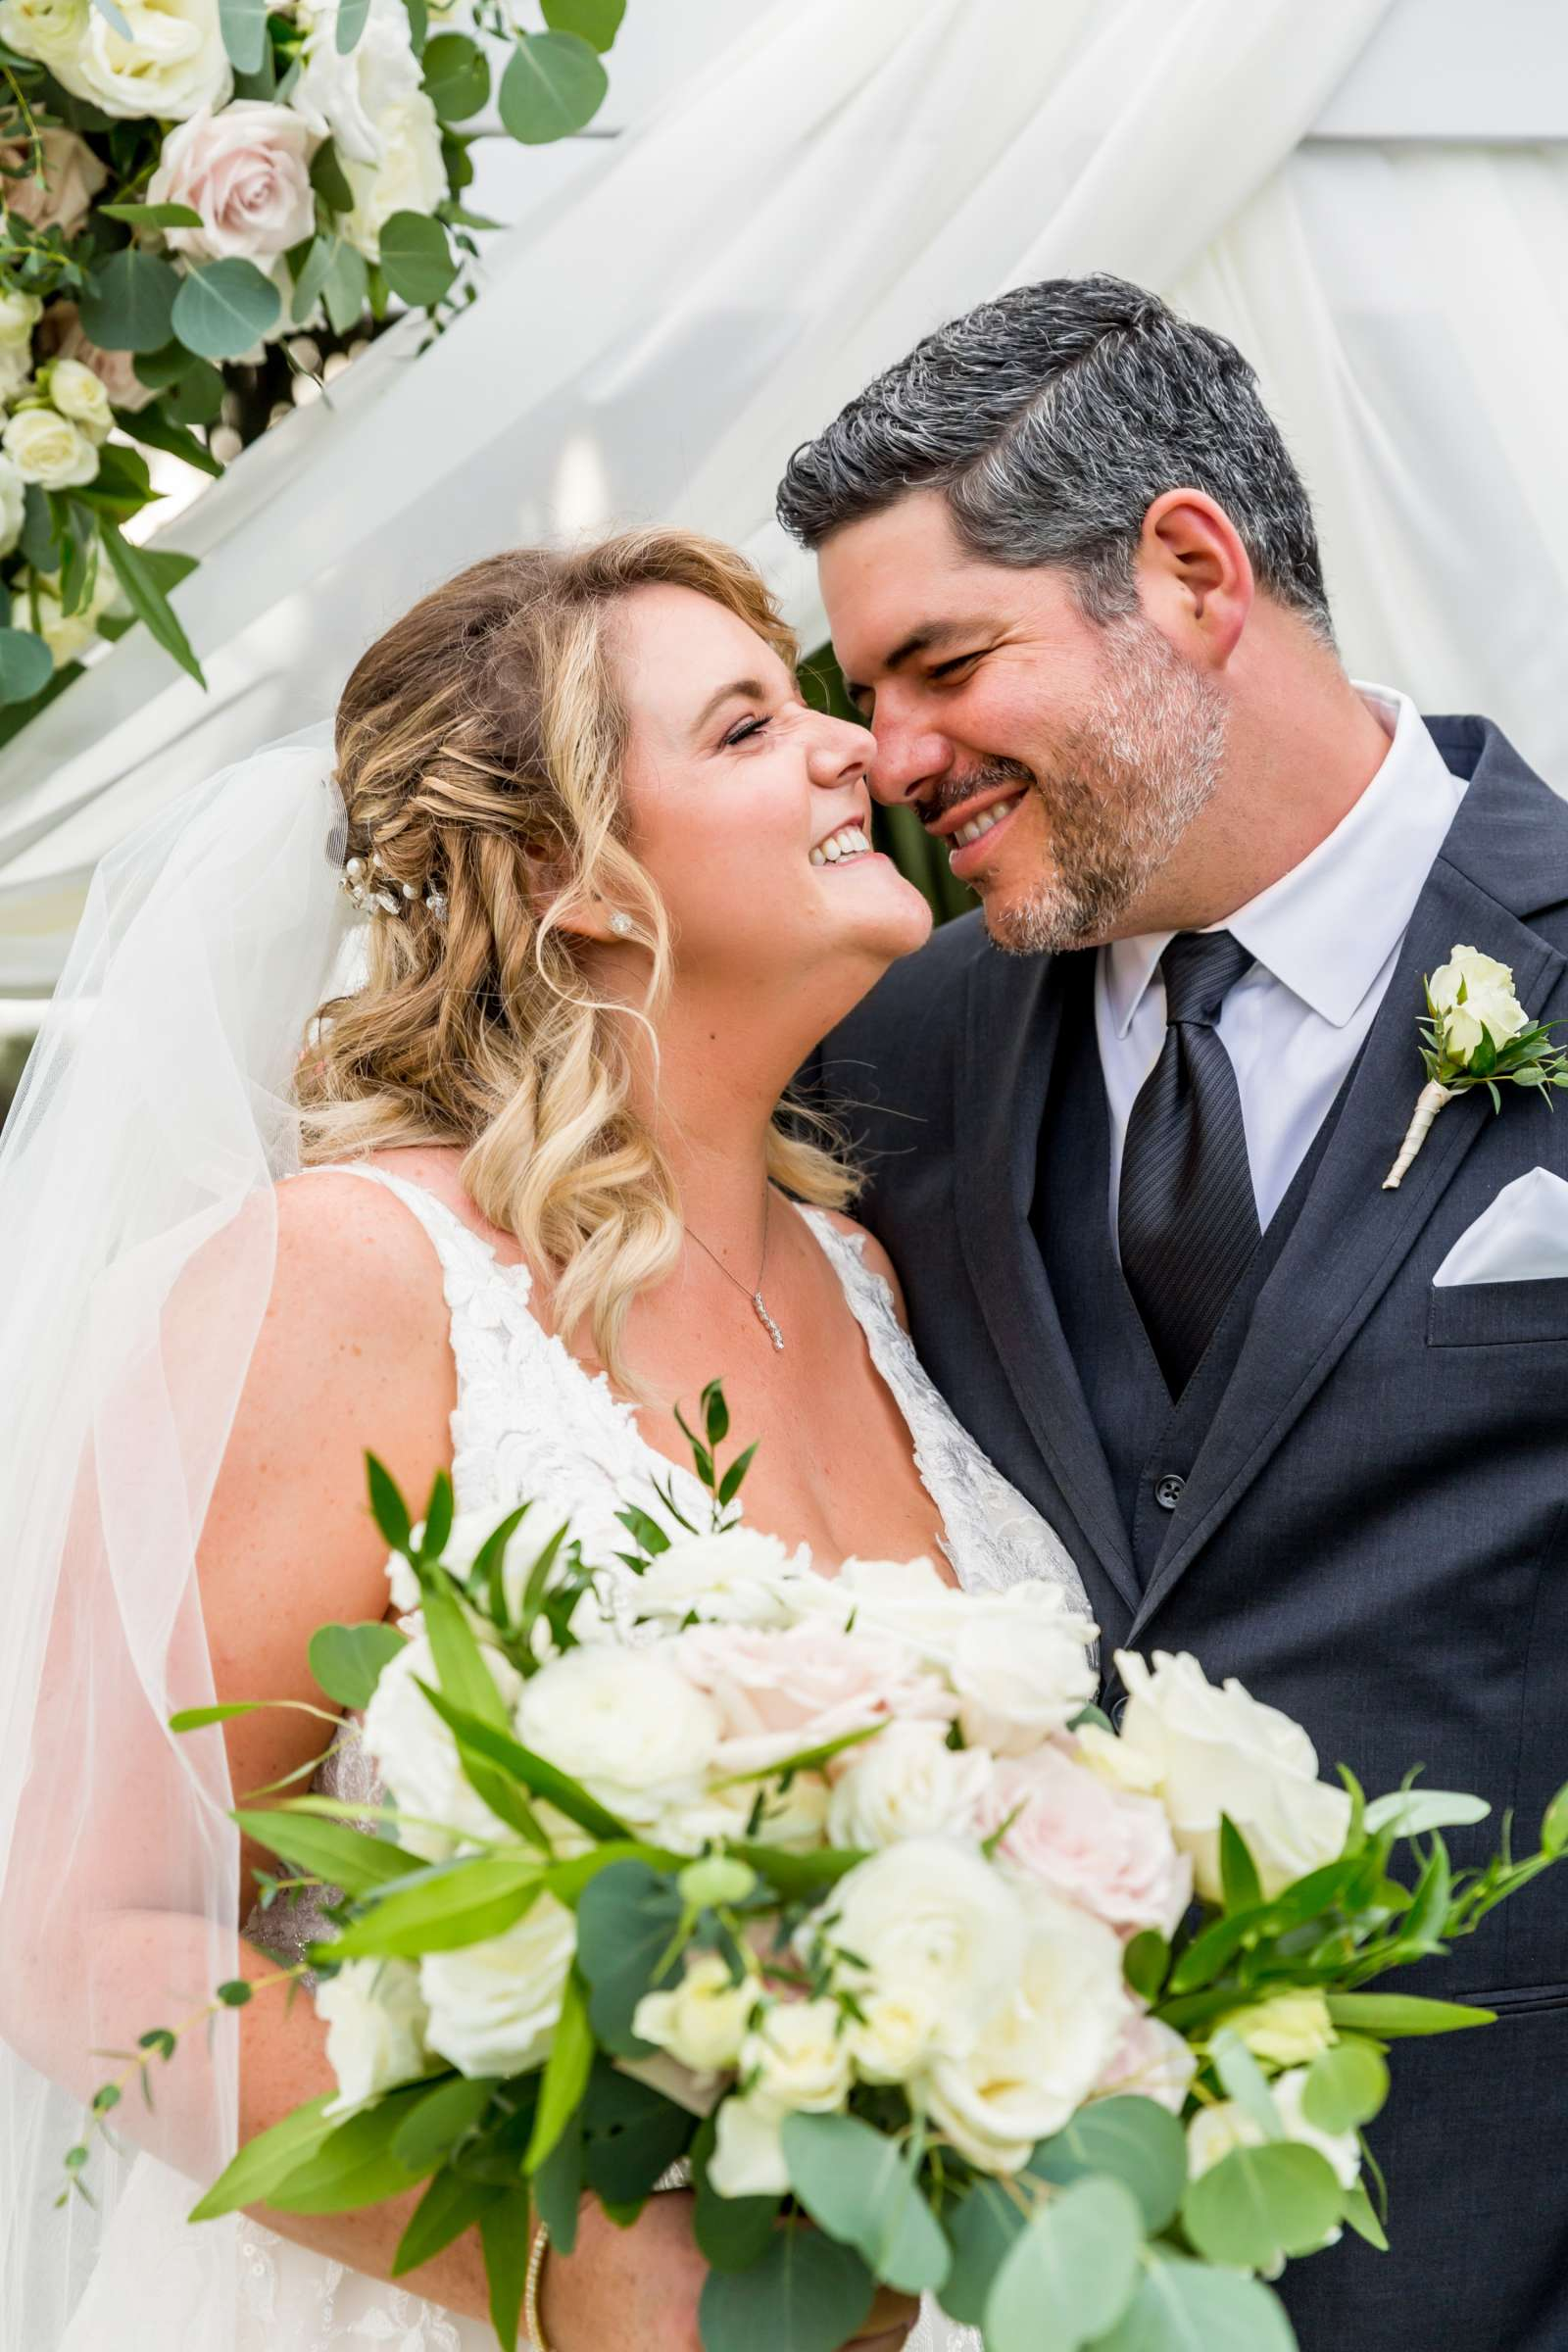 Cape Rey Carlsbad, A Hilton Resort Wedding, Michelle and Justin Wedding Photo #22 by True Photography